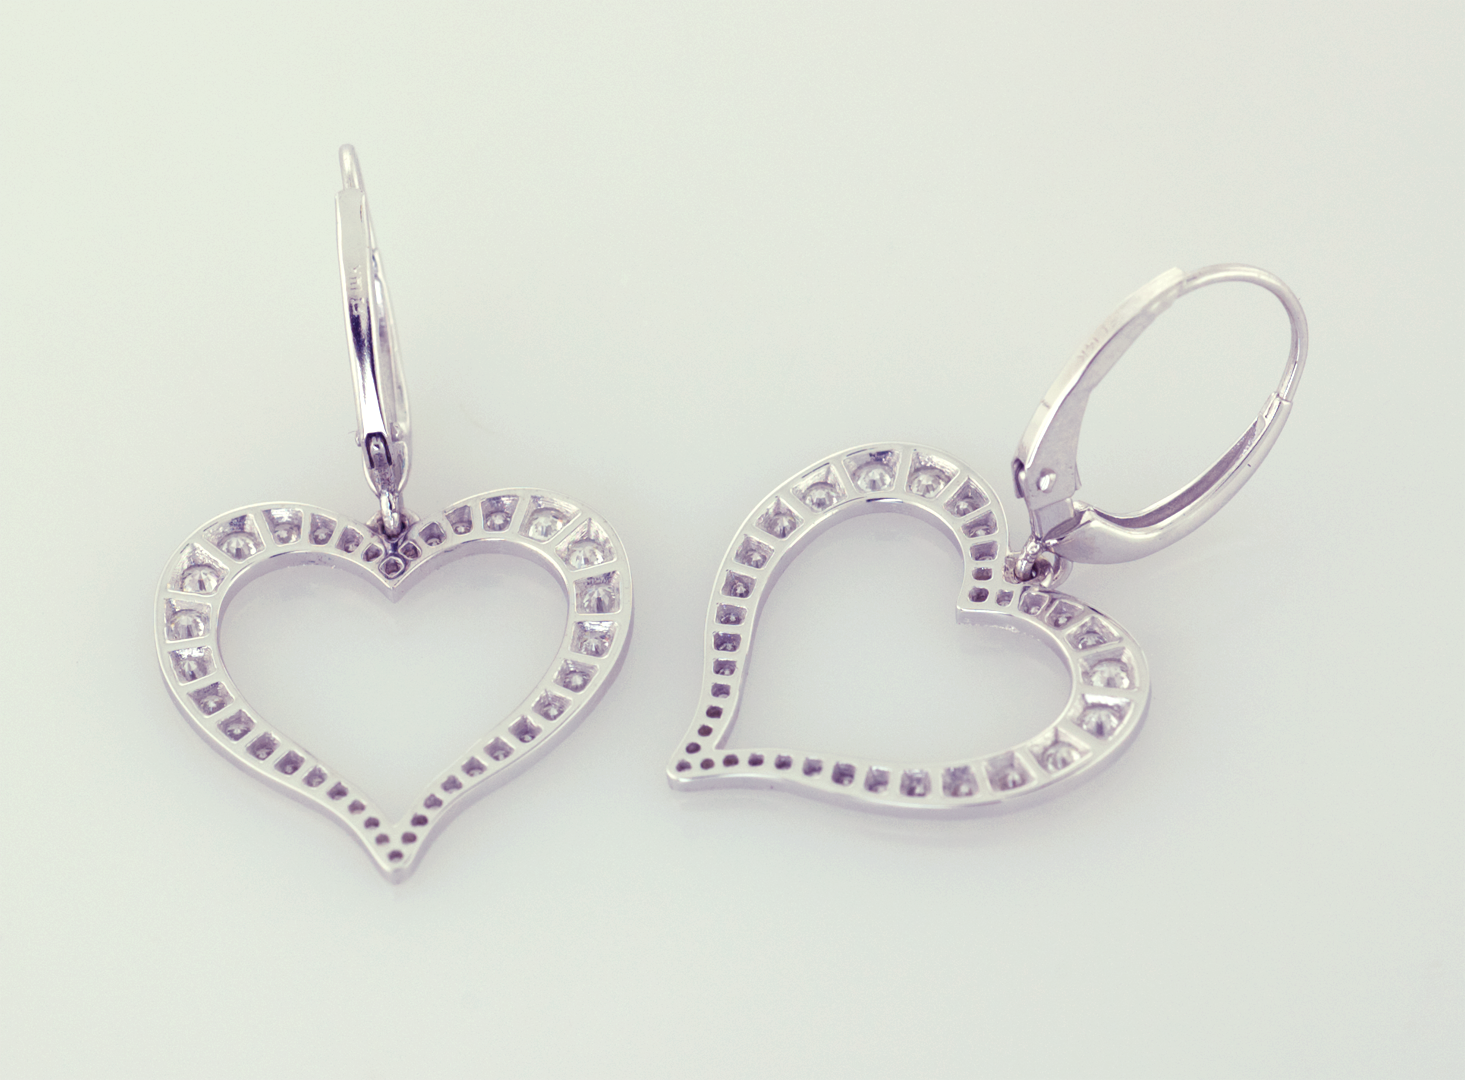 Diamond and 18KT white gold heart earrings, back view